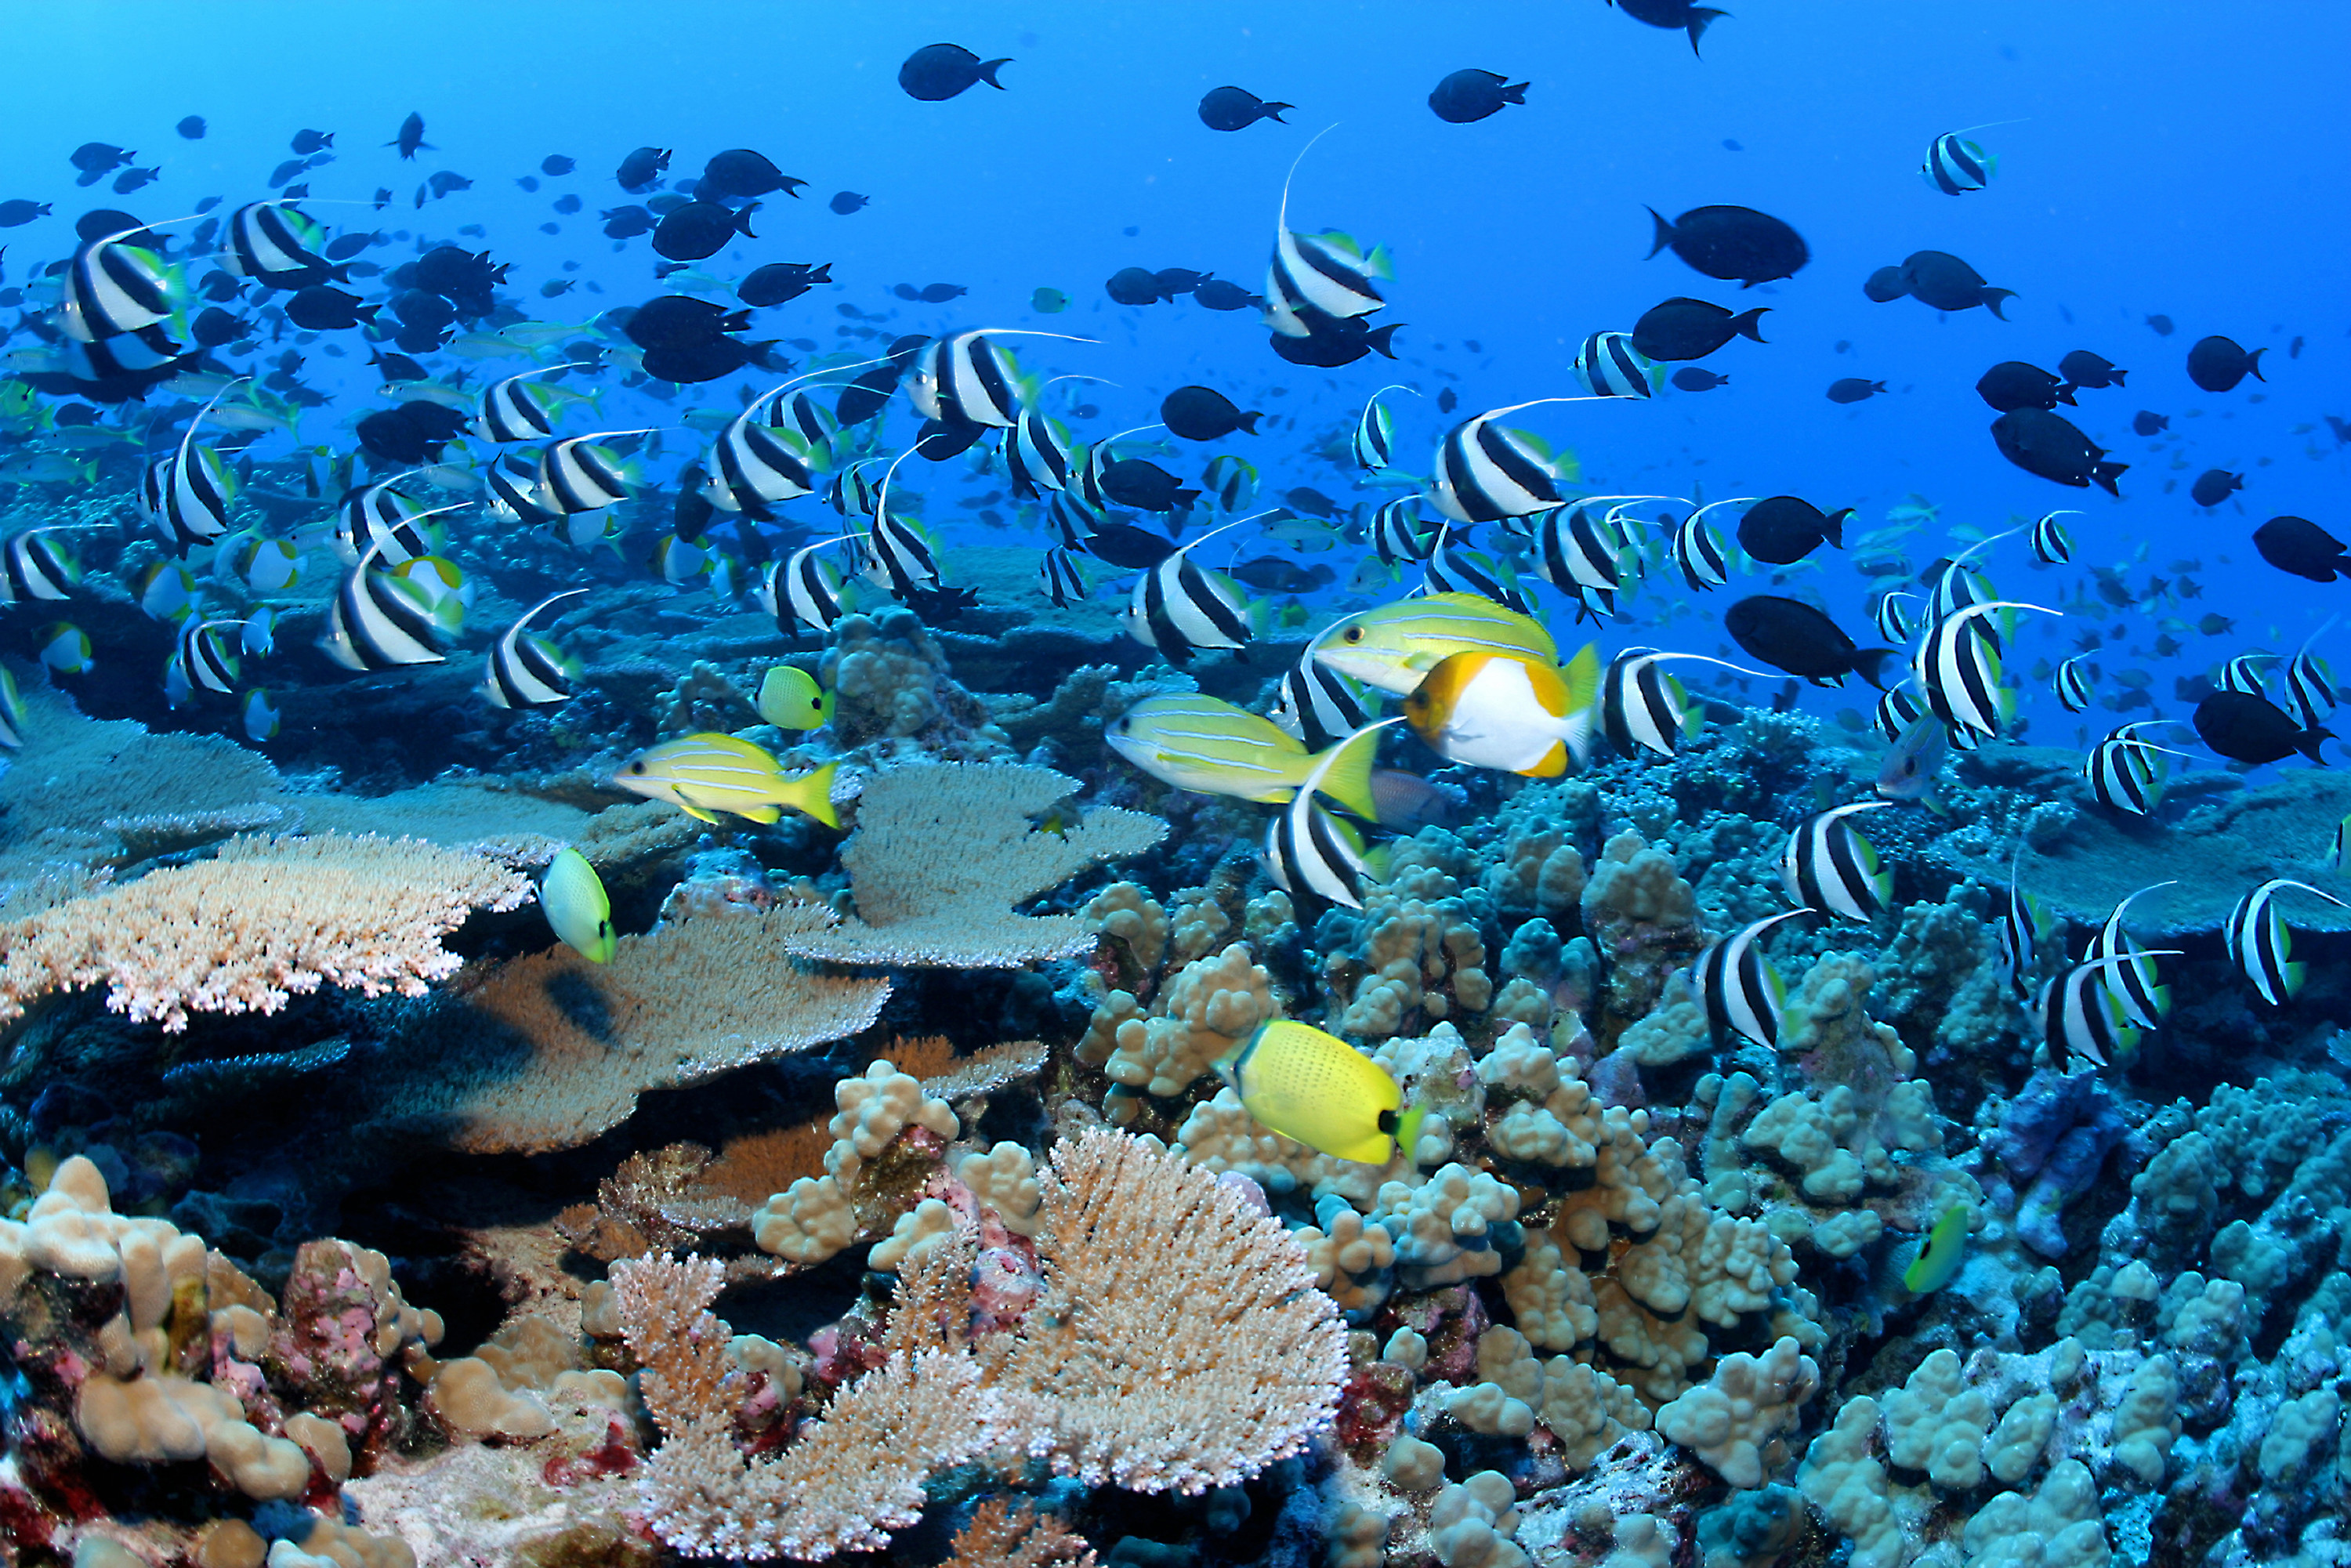 3000x2001 Coral Reef Fishes Wallpaper HD wallpapers - Coral Reef Fishes Wallpaper